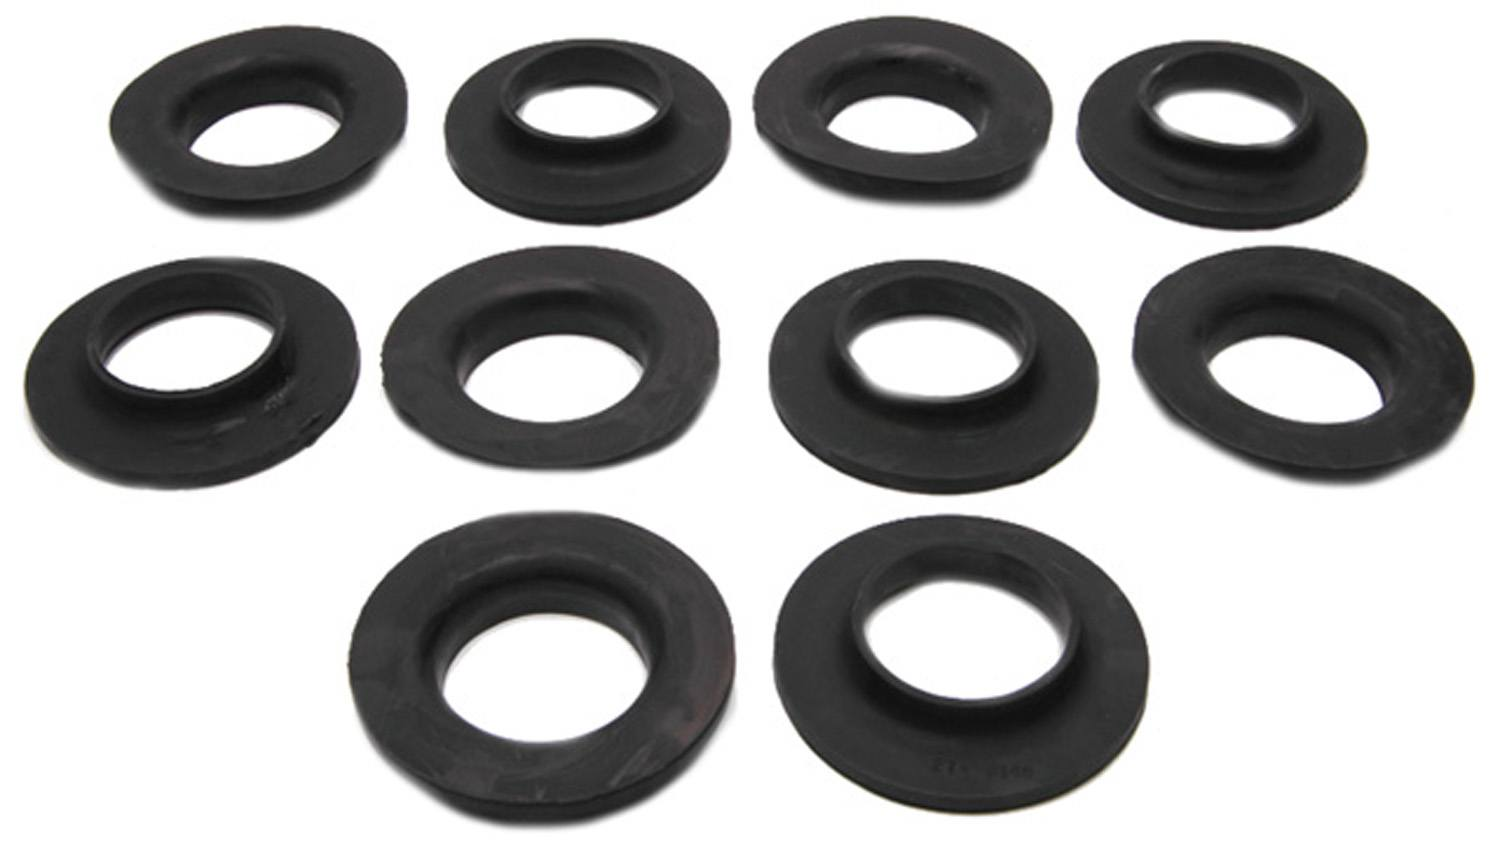 ACDELCO PROFESSIONAL - Coil Spring Insulator - Pack of 10 - DCC 45G18001